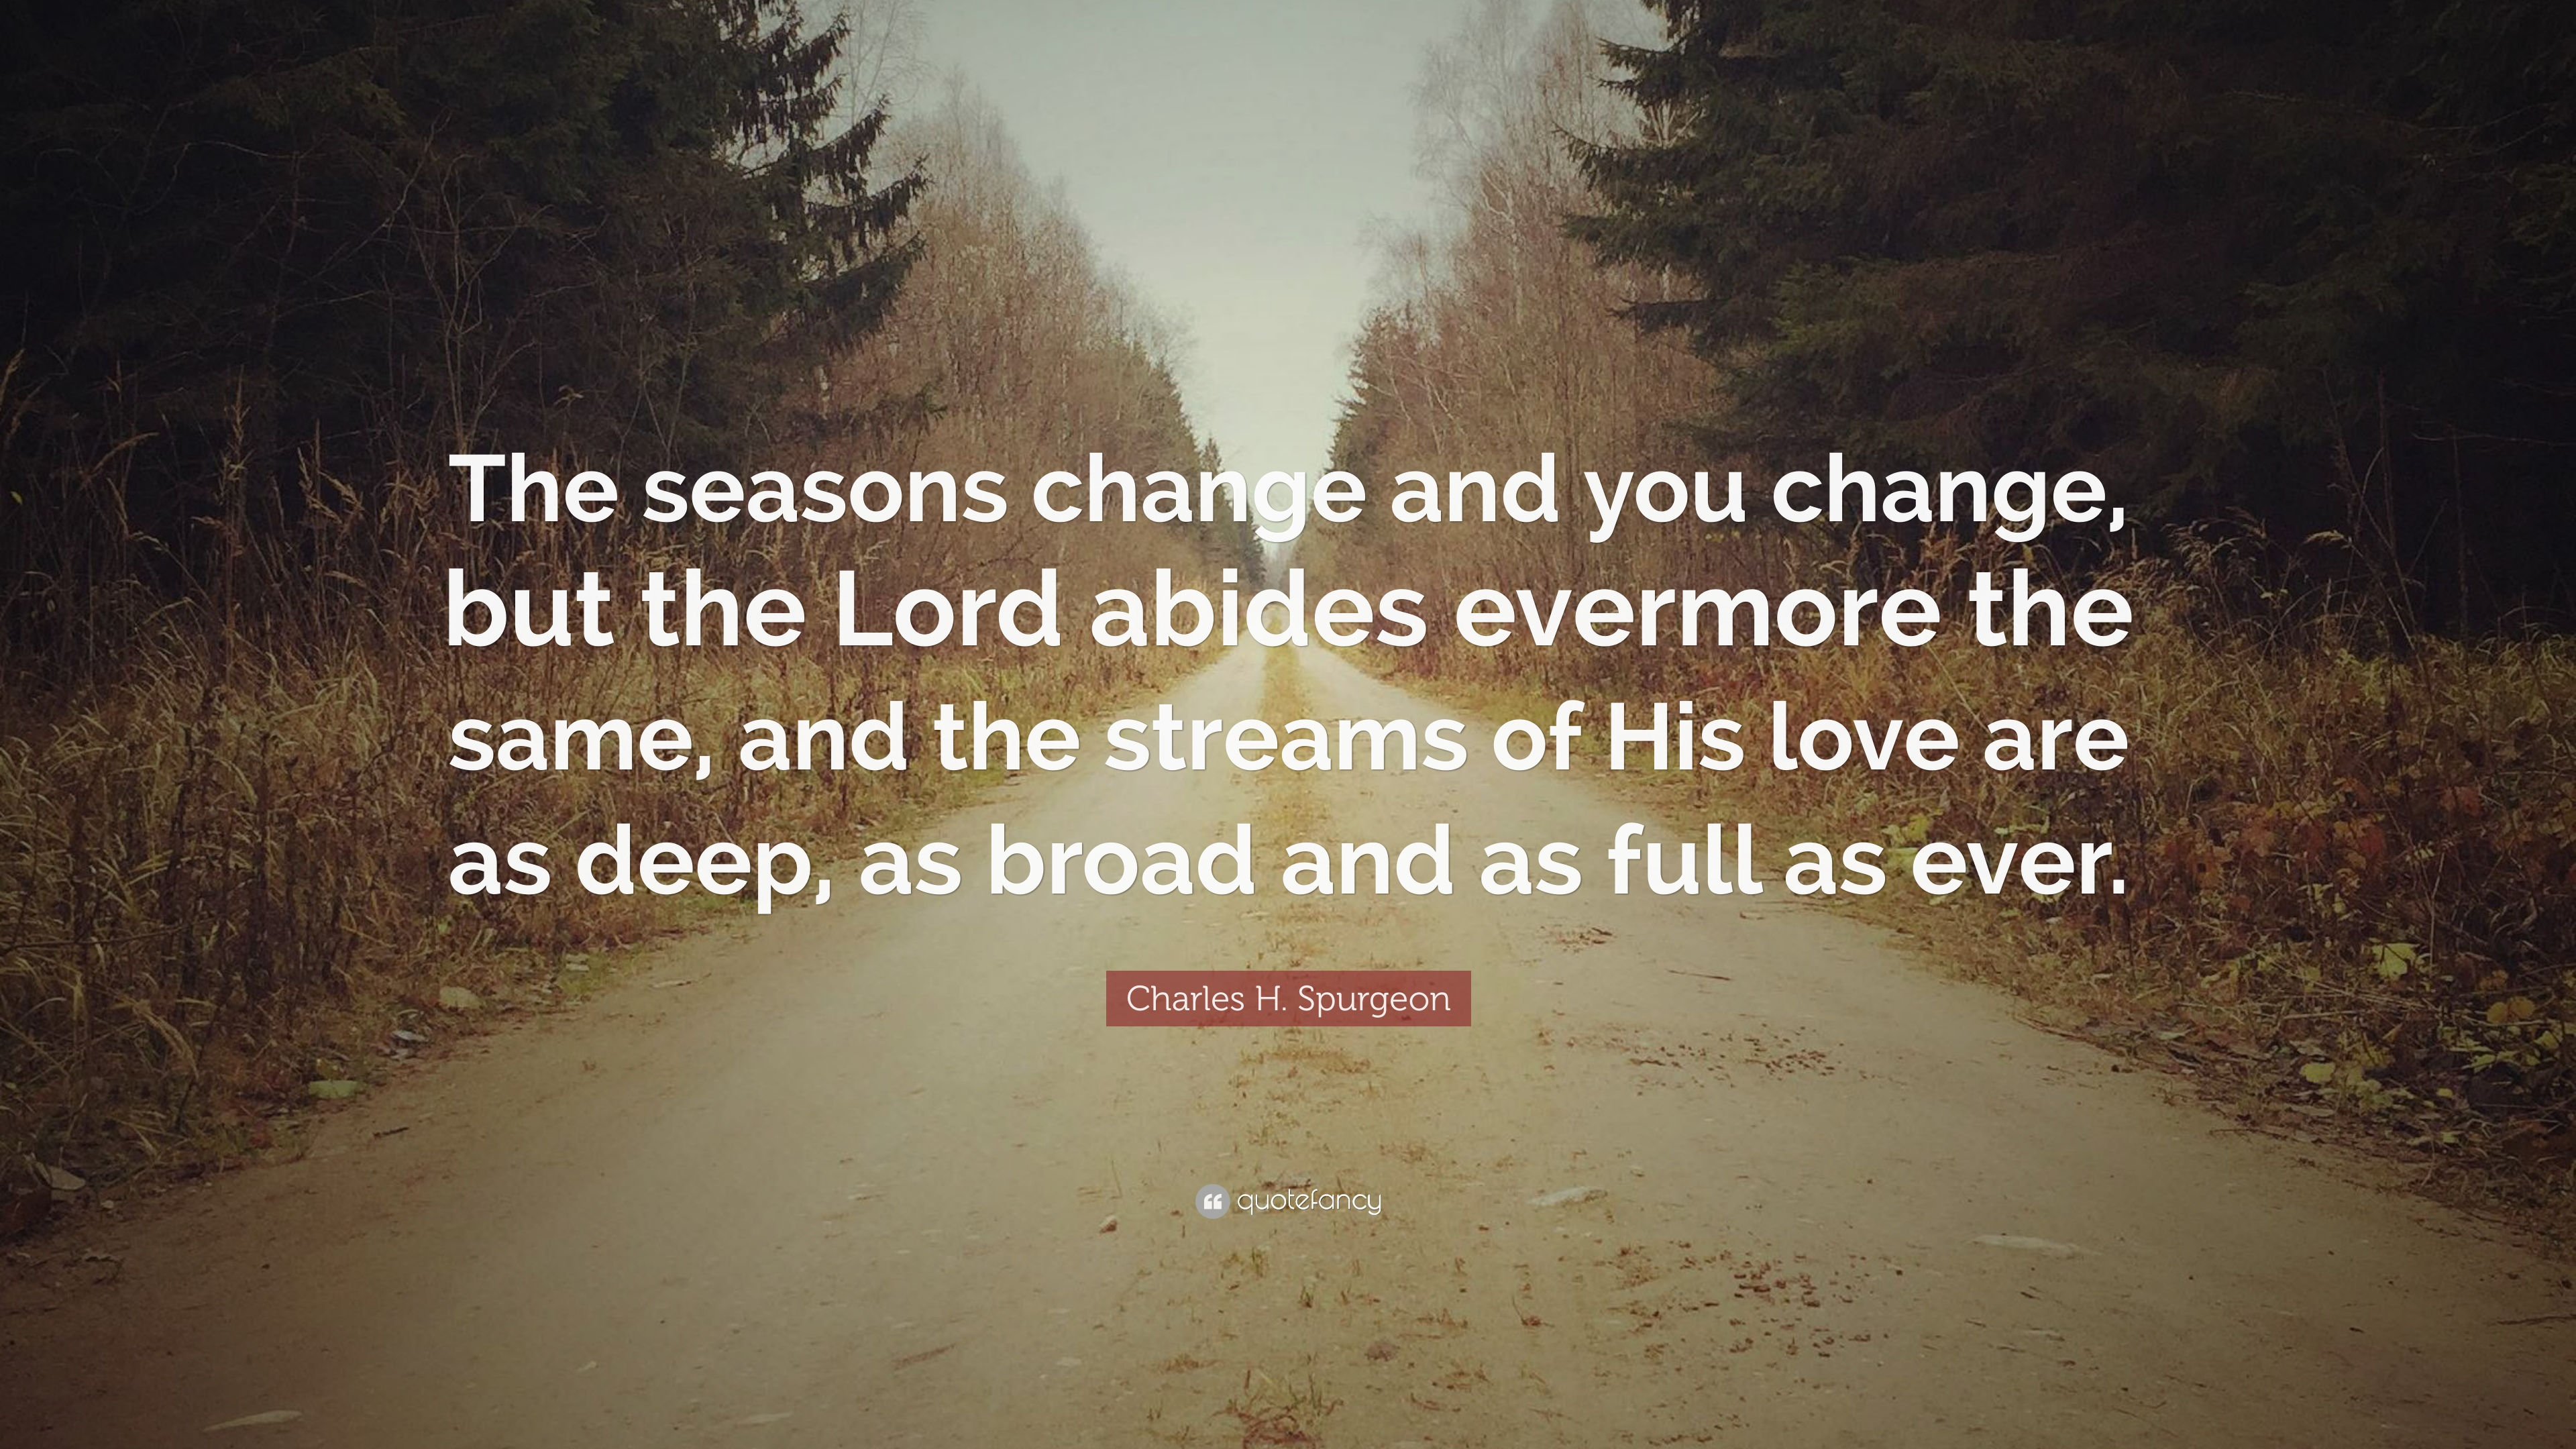 Charles H Spurgeon Quote The Seasons Change And You Change But